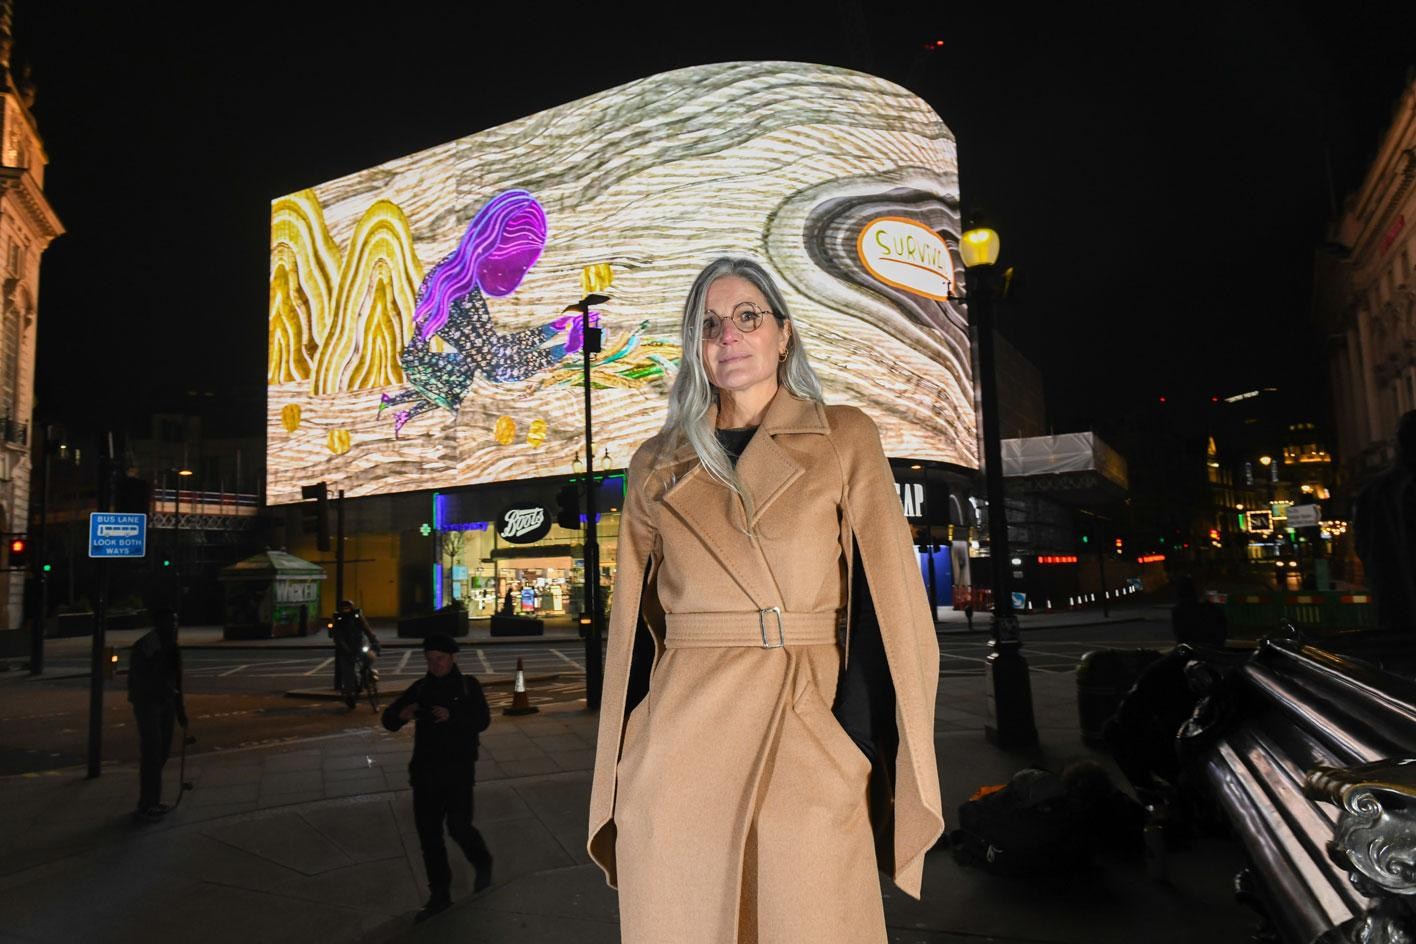 Artist Emma Talbot (wearing Max Mara) at the firstscreening for her CIRCA commission in Piccadilly Circus